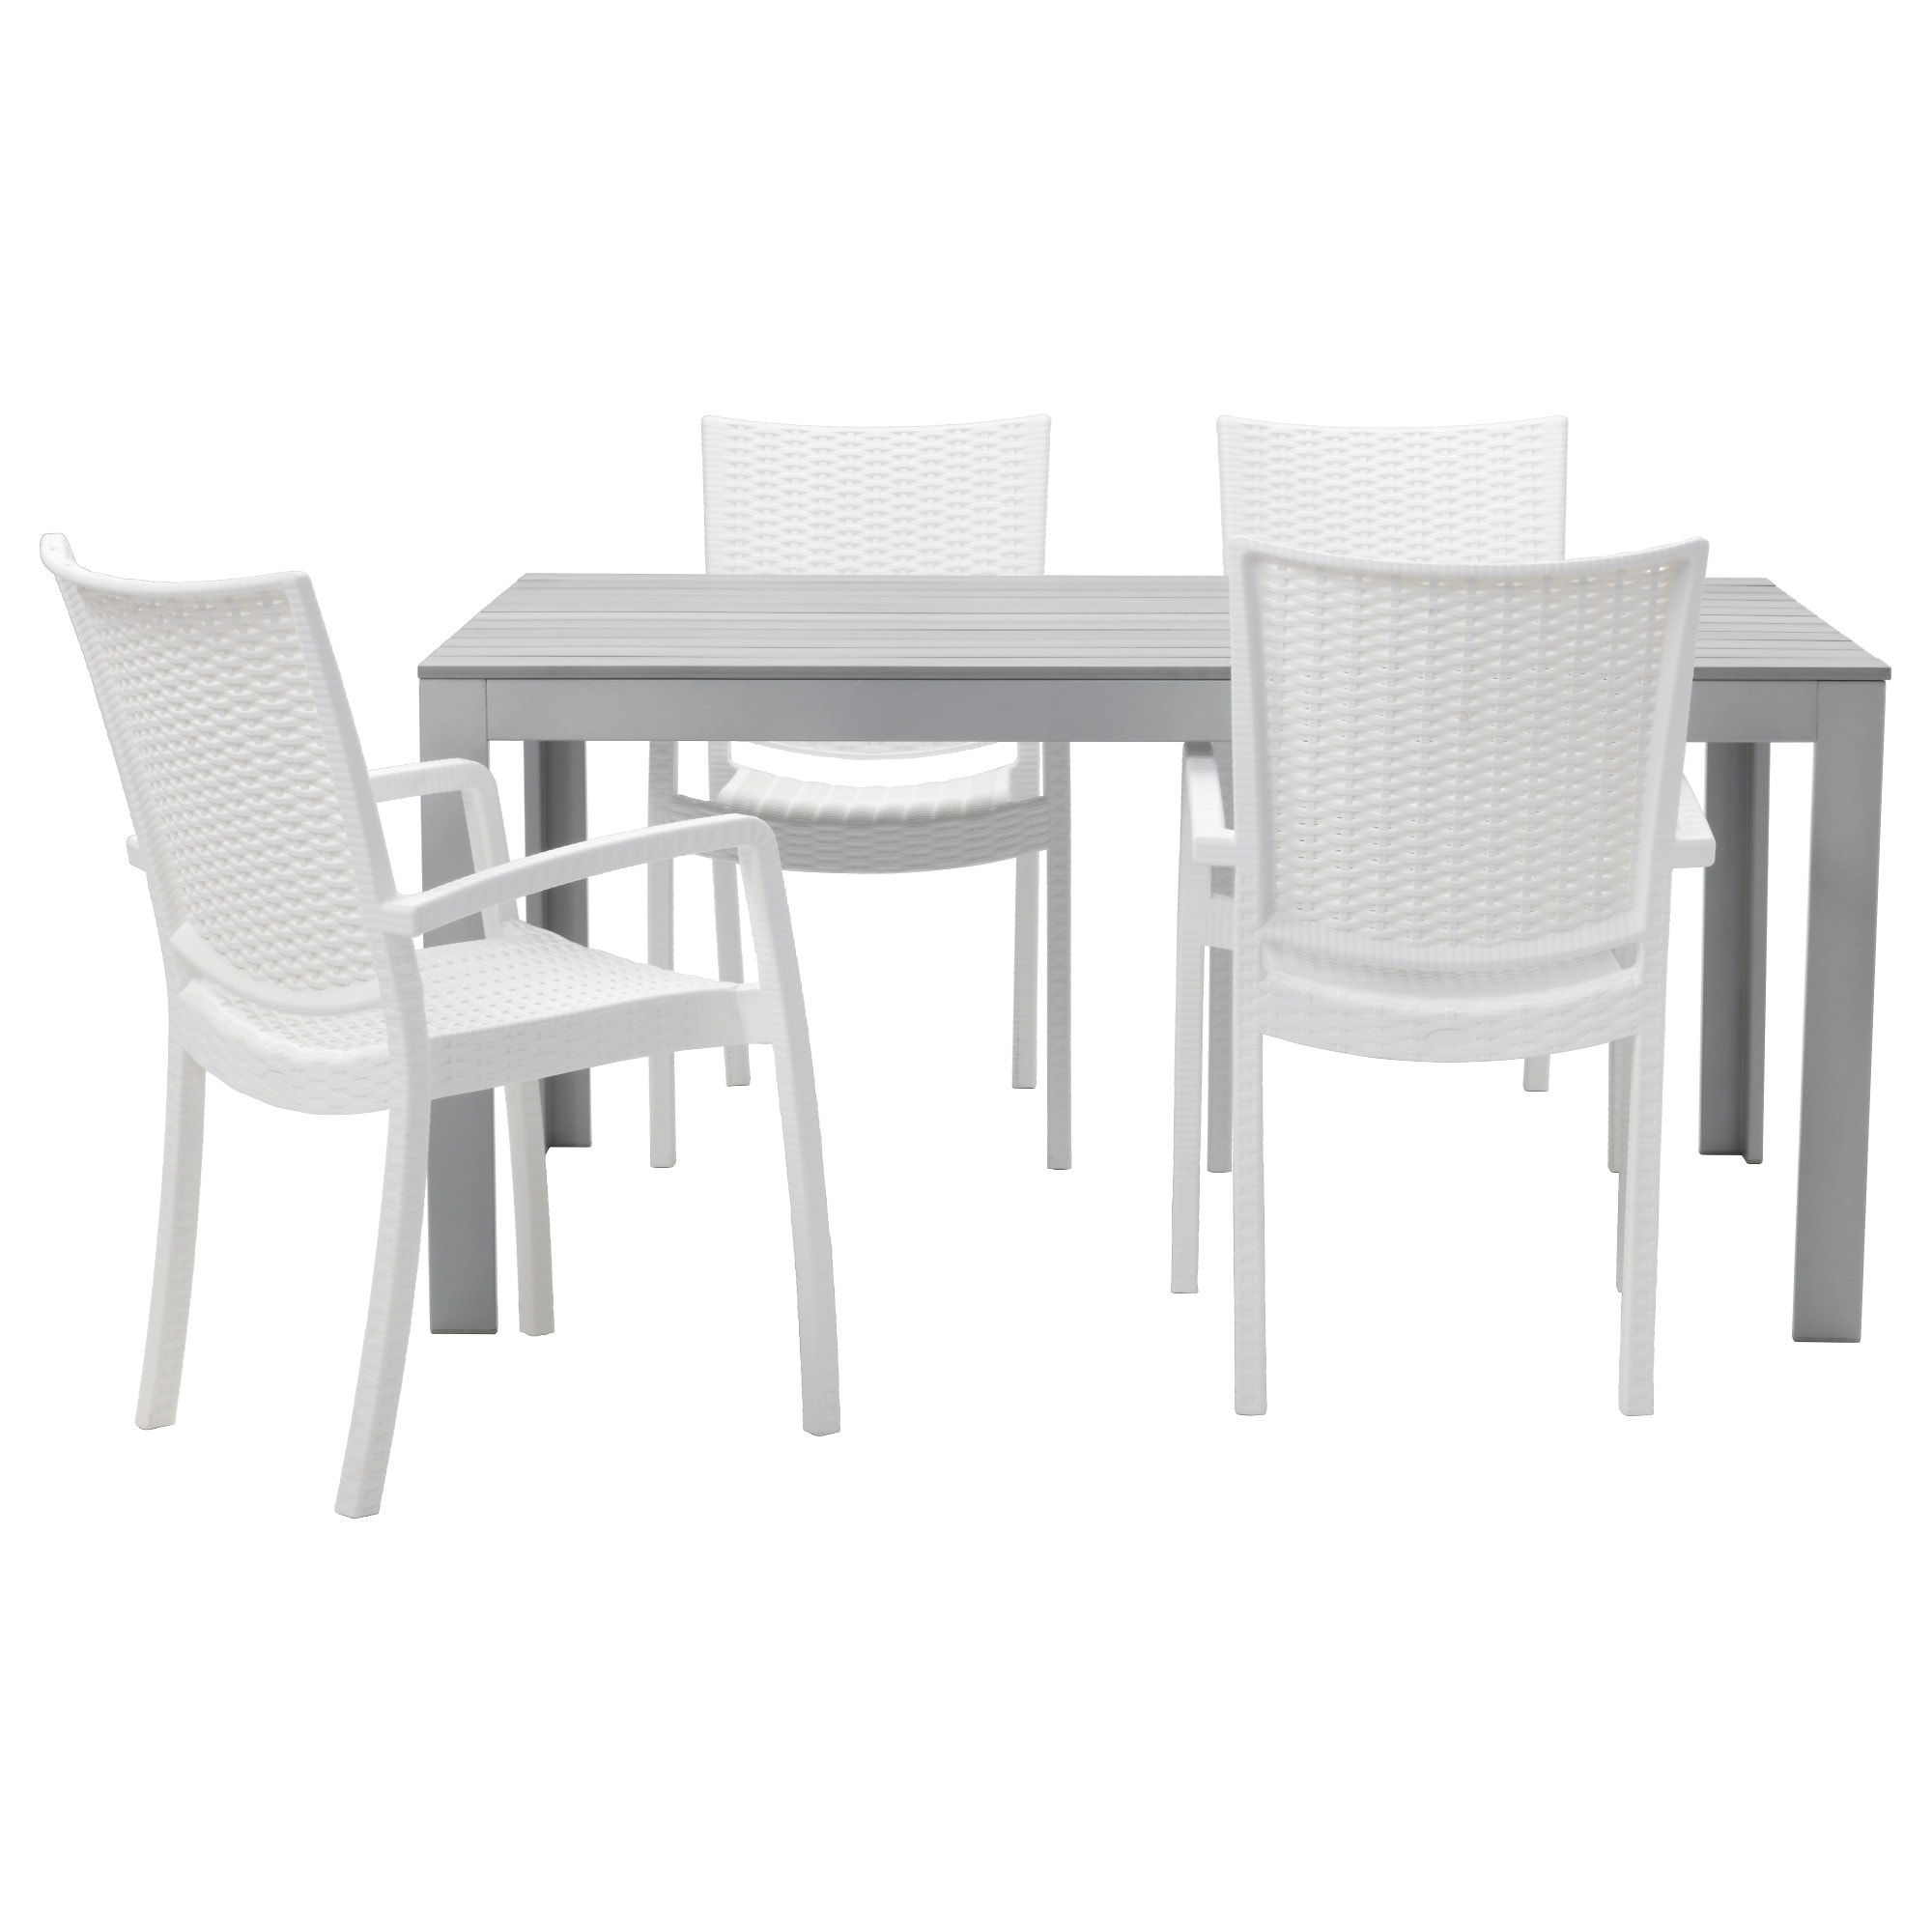 Outdoor dining furniture, dining chairs & dining sets   ikea